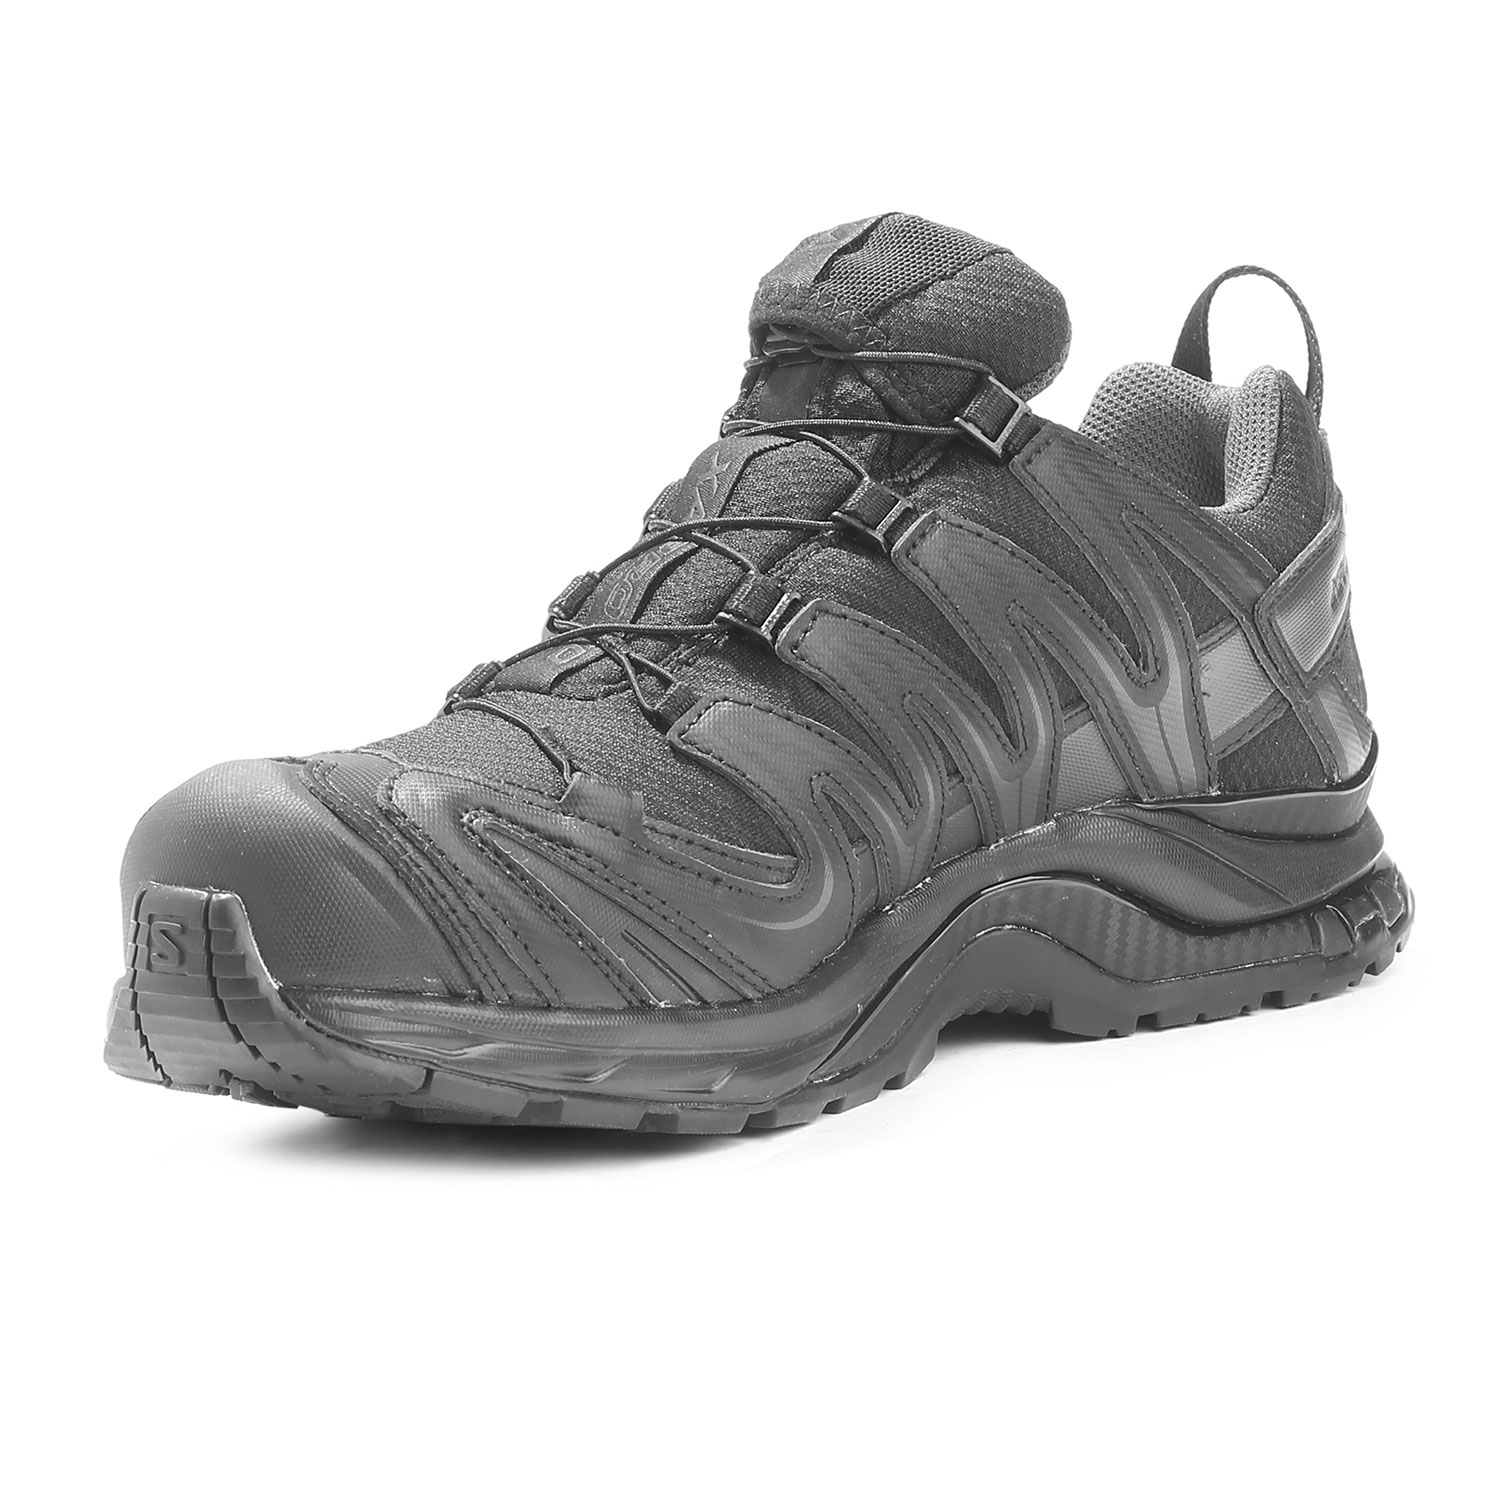 salomon xa pro 3d gtx forces black uniform